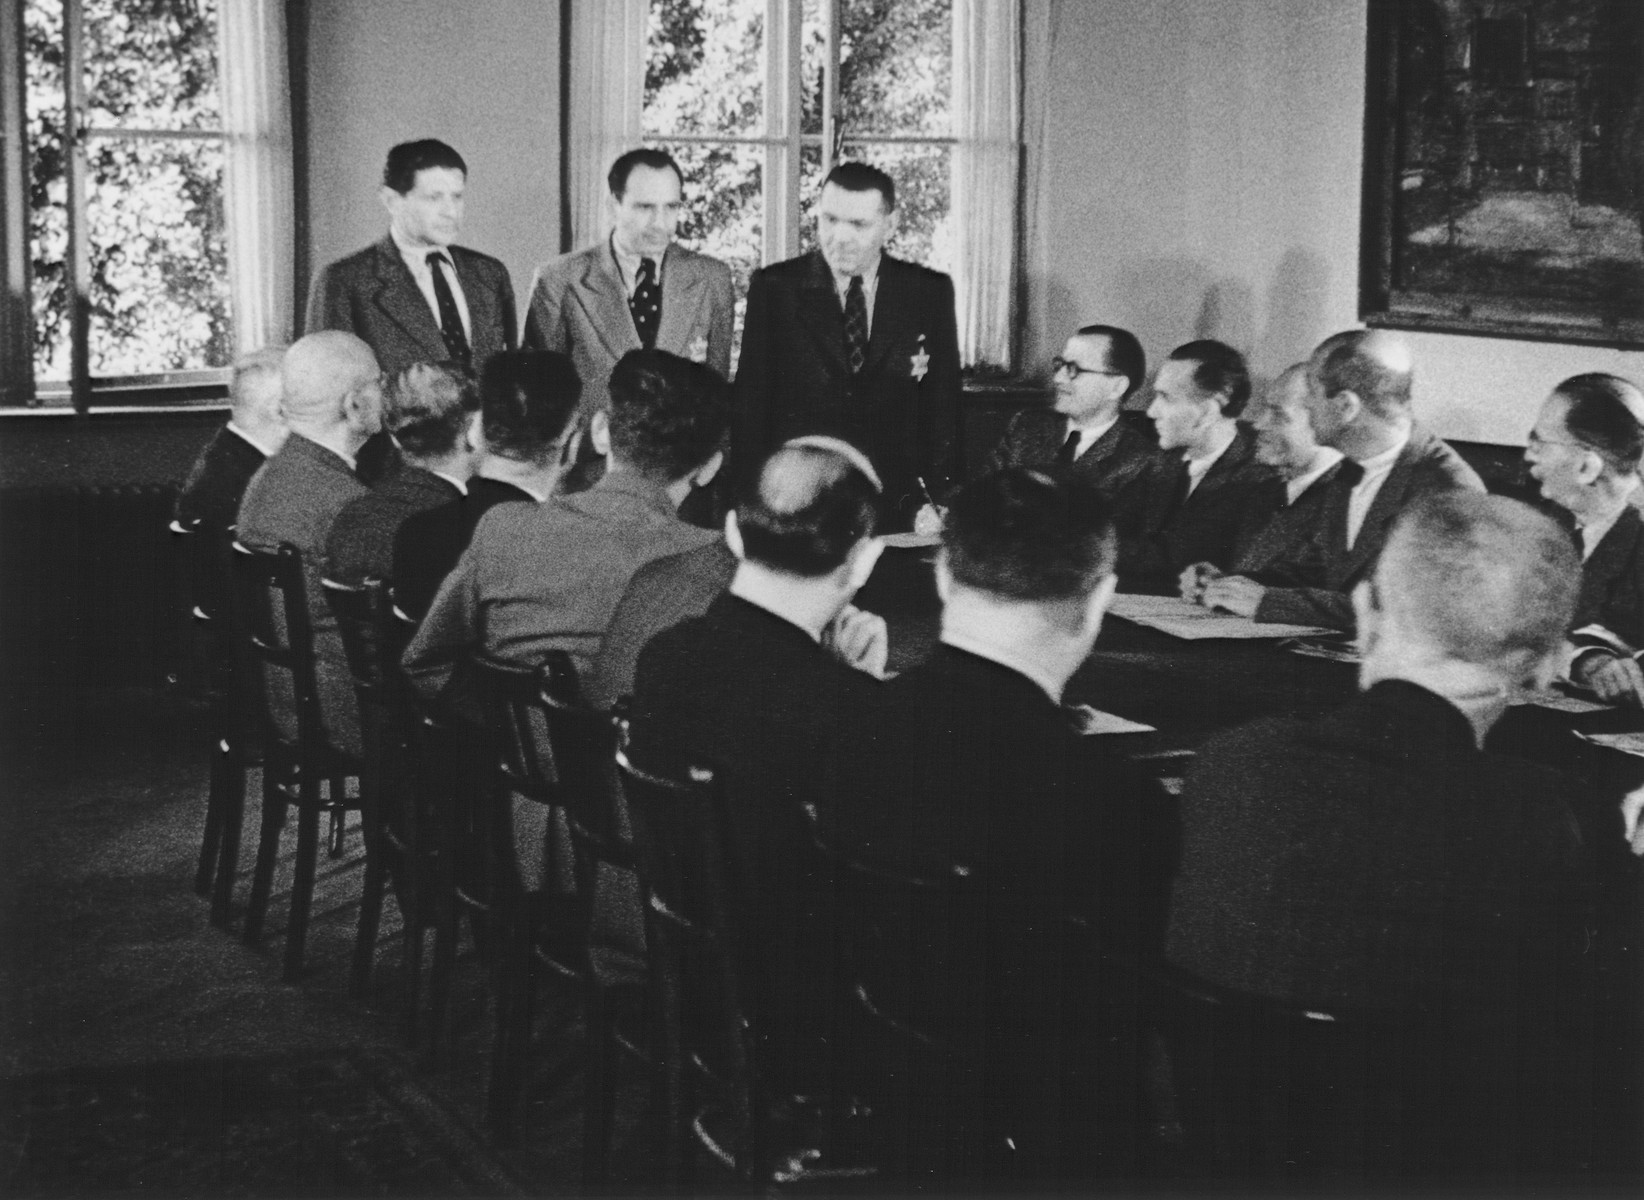 """STILL PHOTOGRAPH FROM THE NAZI PROPAGANDA FILM, """"Der Fuehrer Schenkt den Juden eine Stadt"""" [The Fuehrer gives the Jews a City].  Members of the Altestenrat (Jewish council) at a meeting in the Theresienstadt ghetto.  Pictured standing up from left to right: Otto Zucker, Paul Epstein, and Benjamin Murmelstein."""